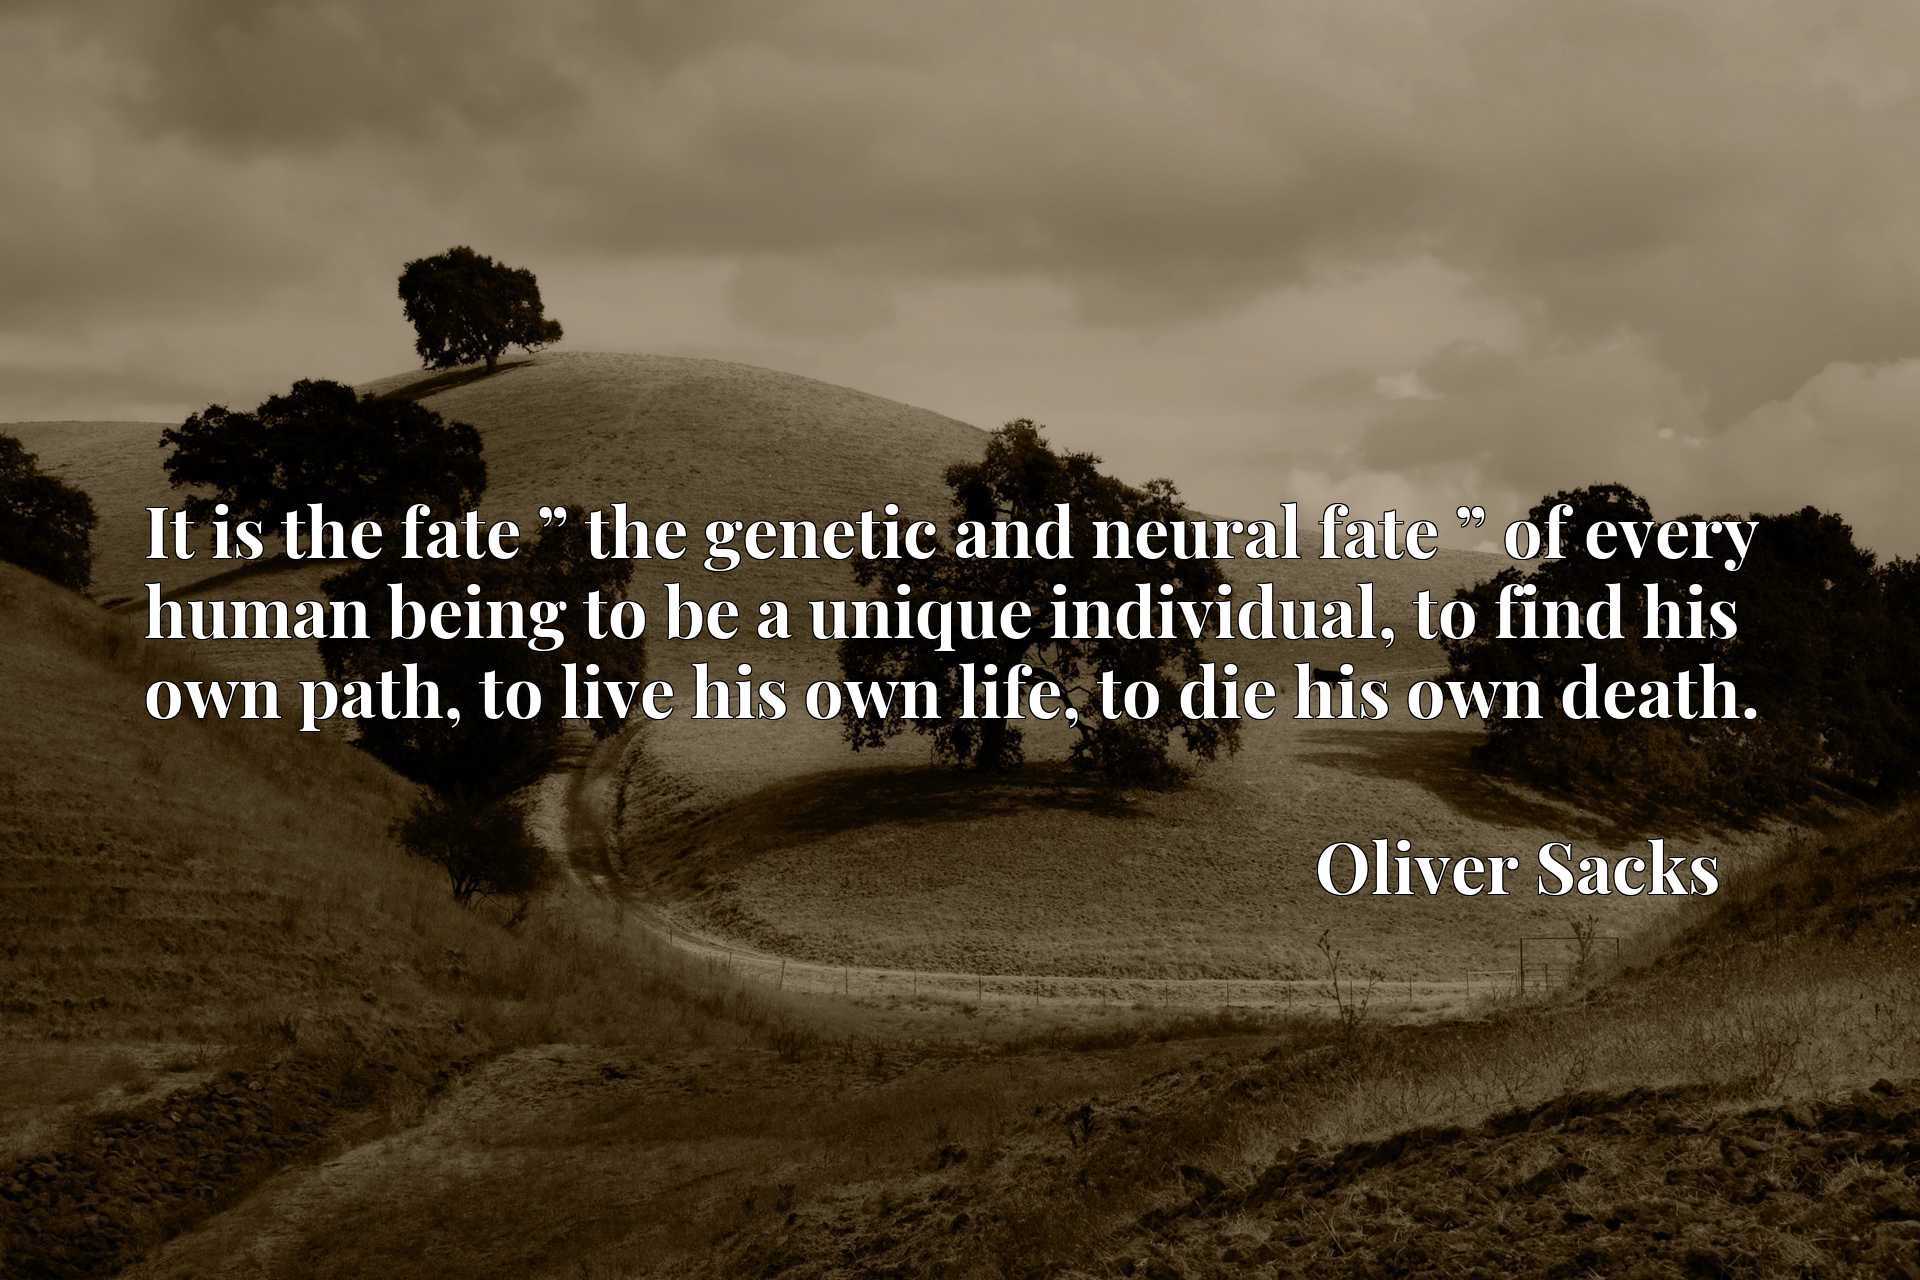 """It is the fate """" the genetic and neural fate """" of every human being to be a unique individual, to find his own path, to live his own life, to die his own death."""